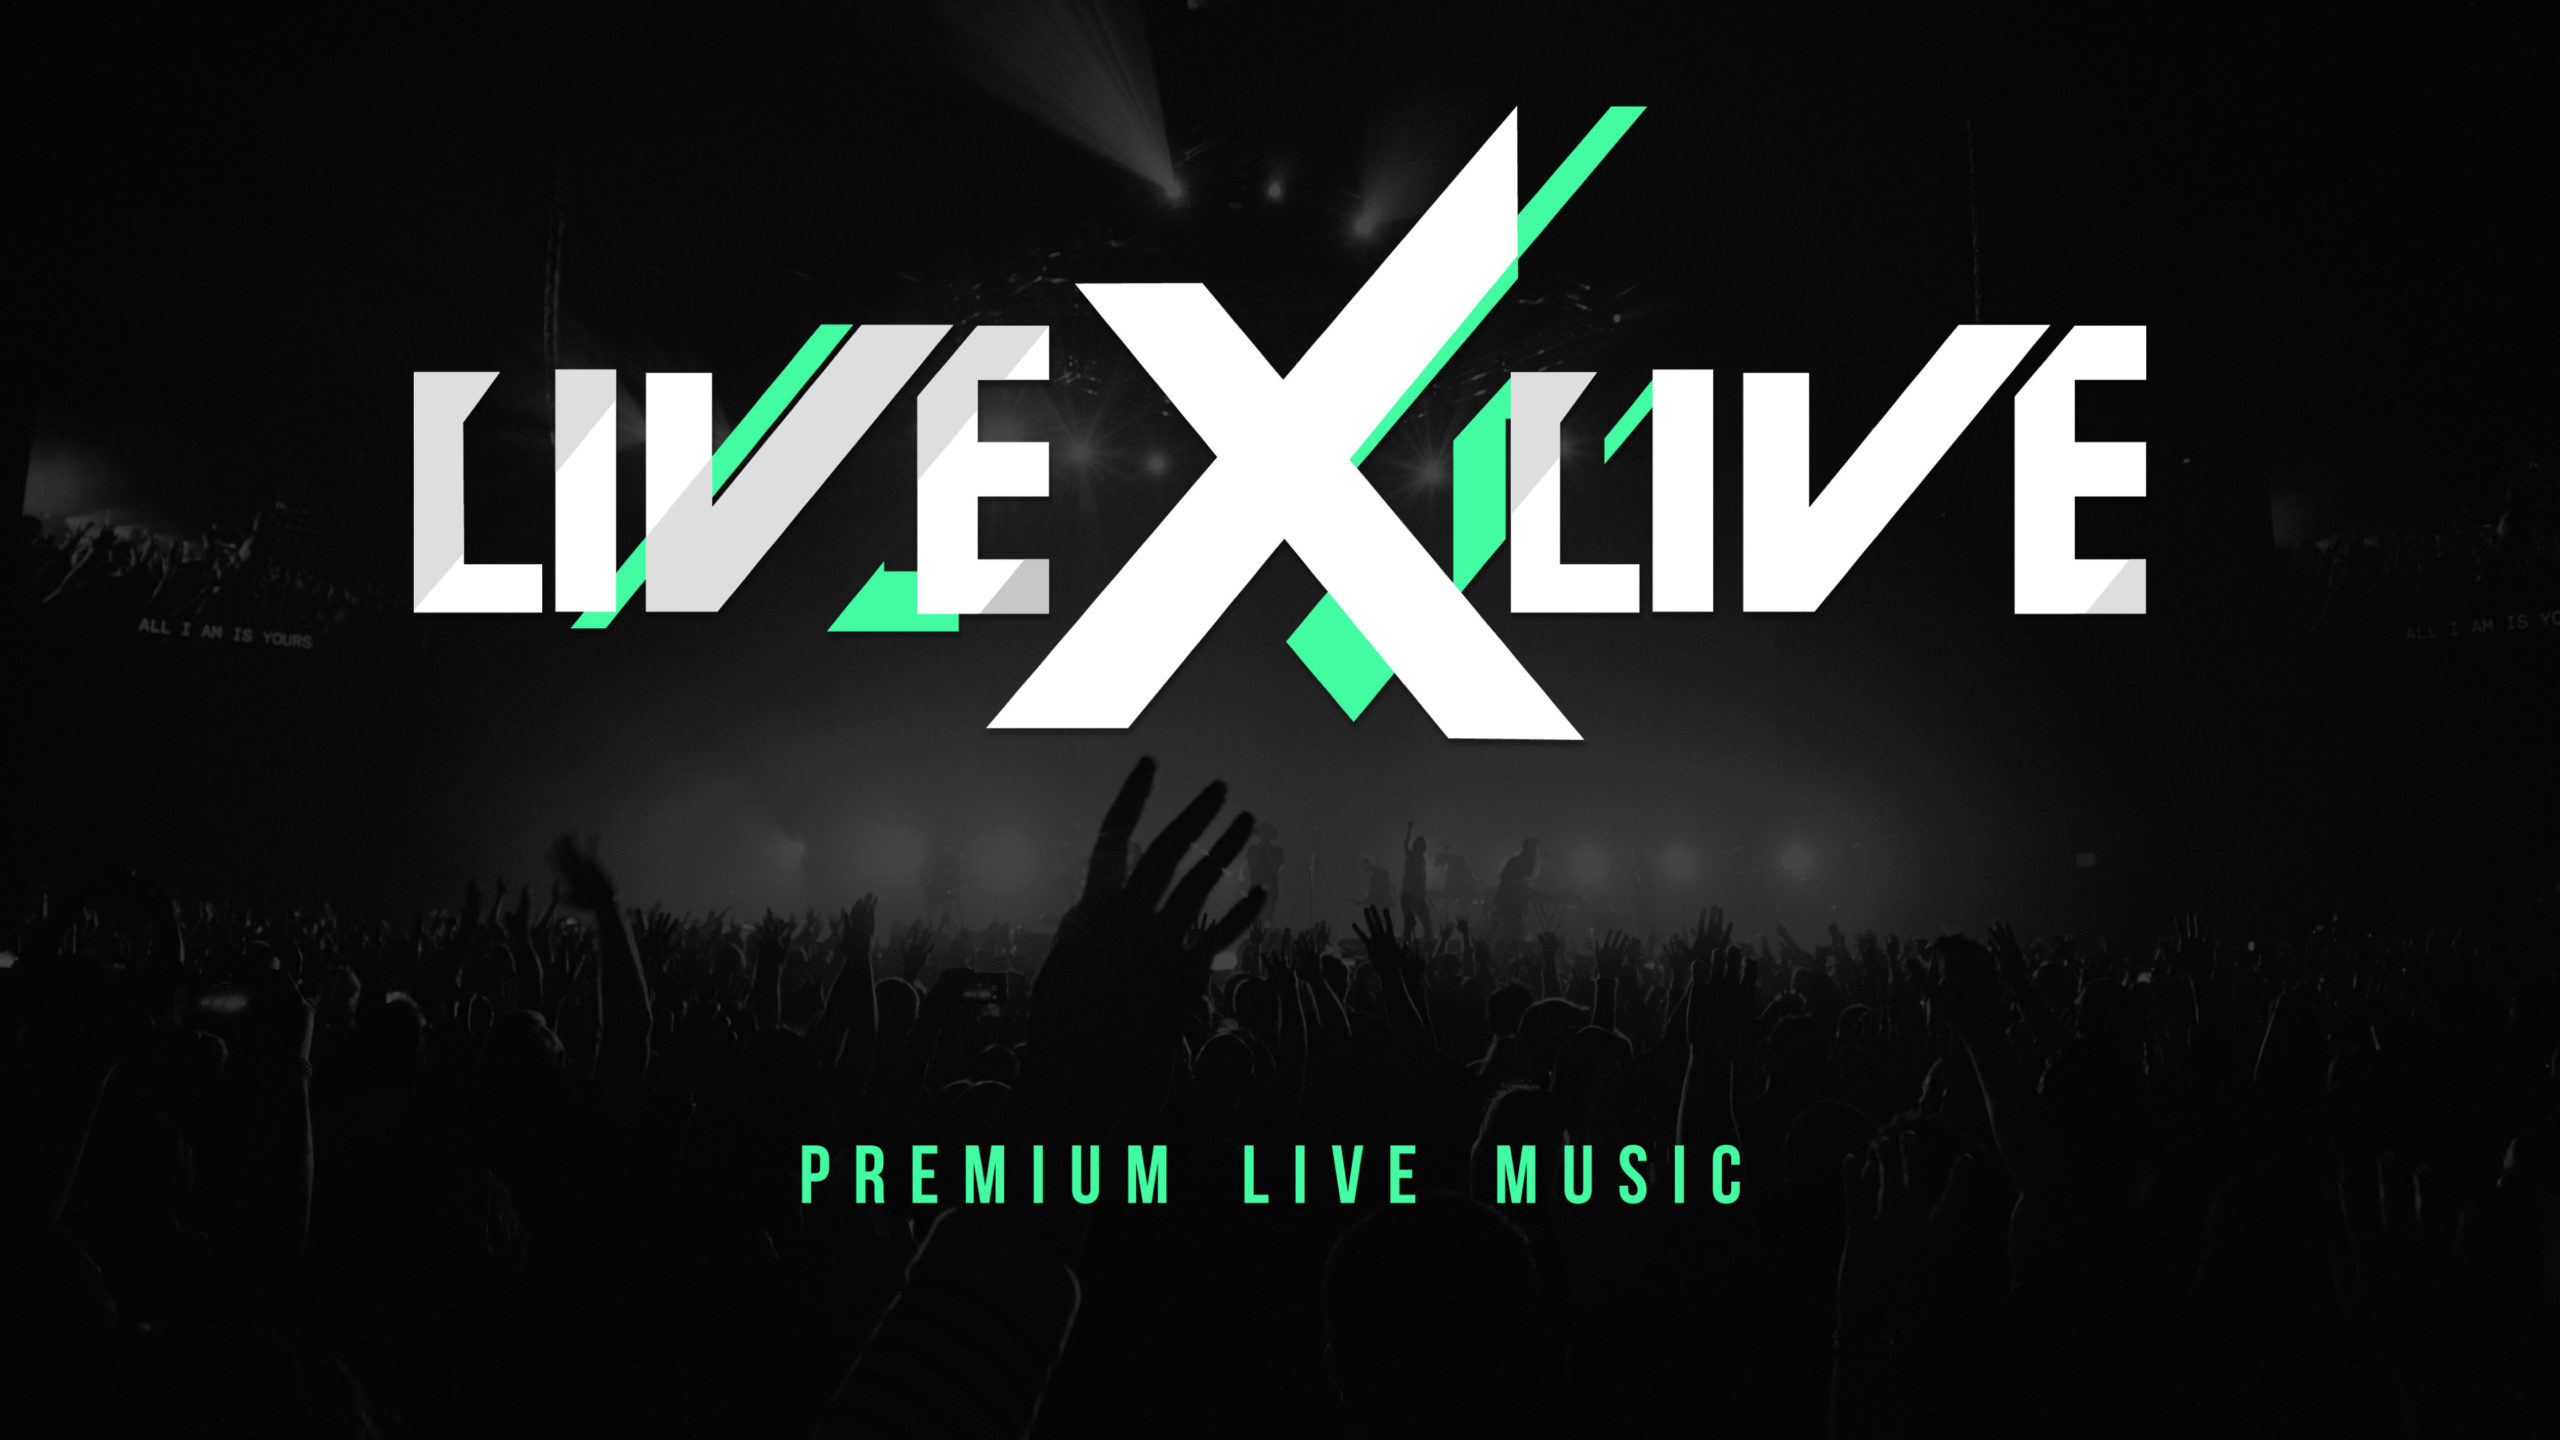 LiveXLive to launch pay-per-view live stream music events 'to ...